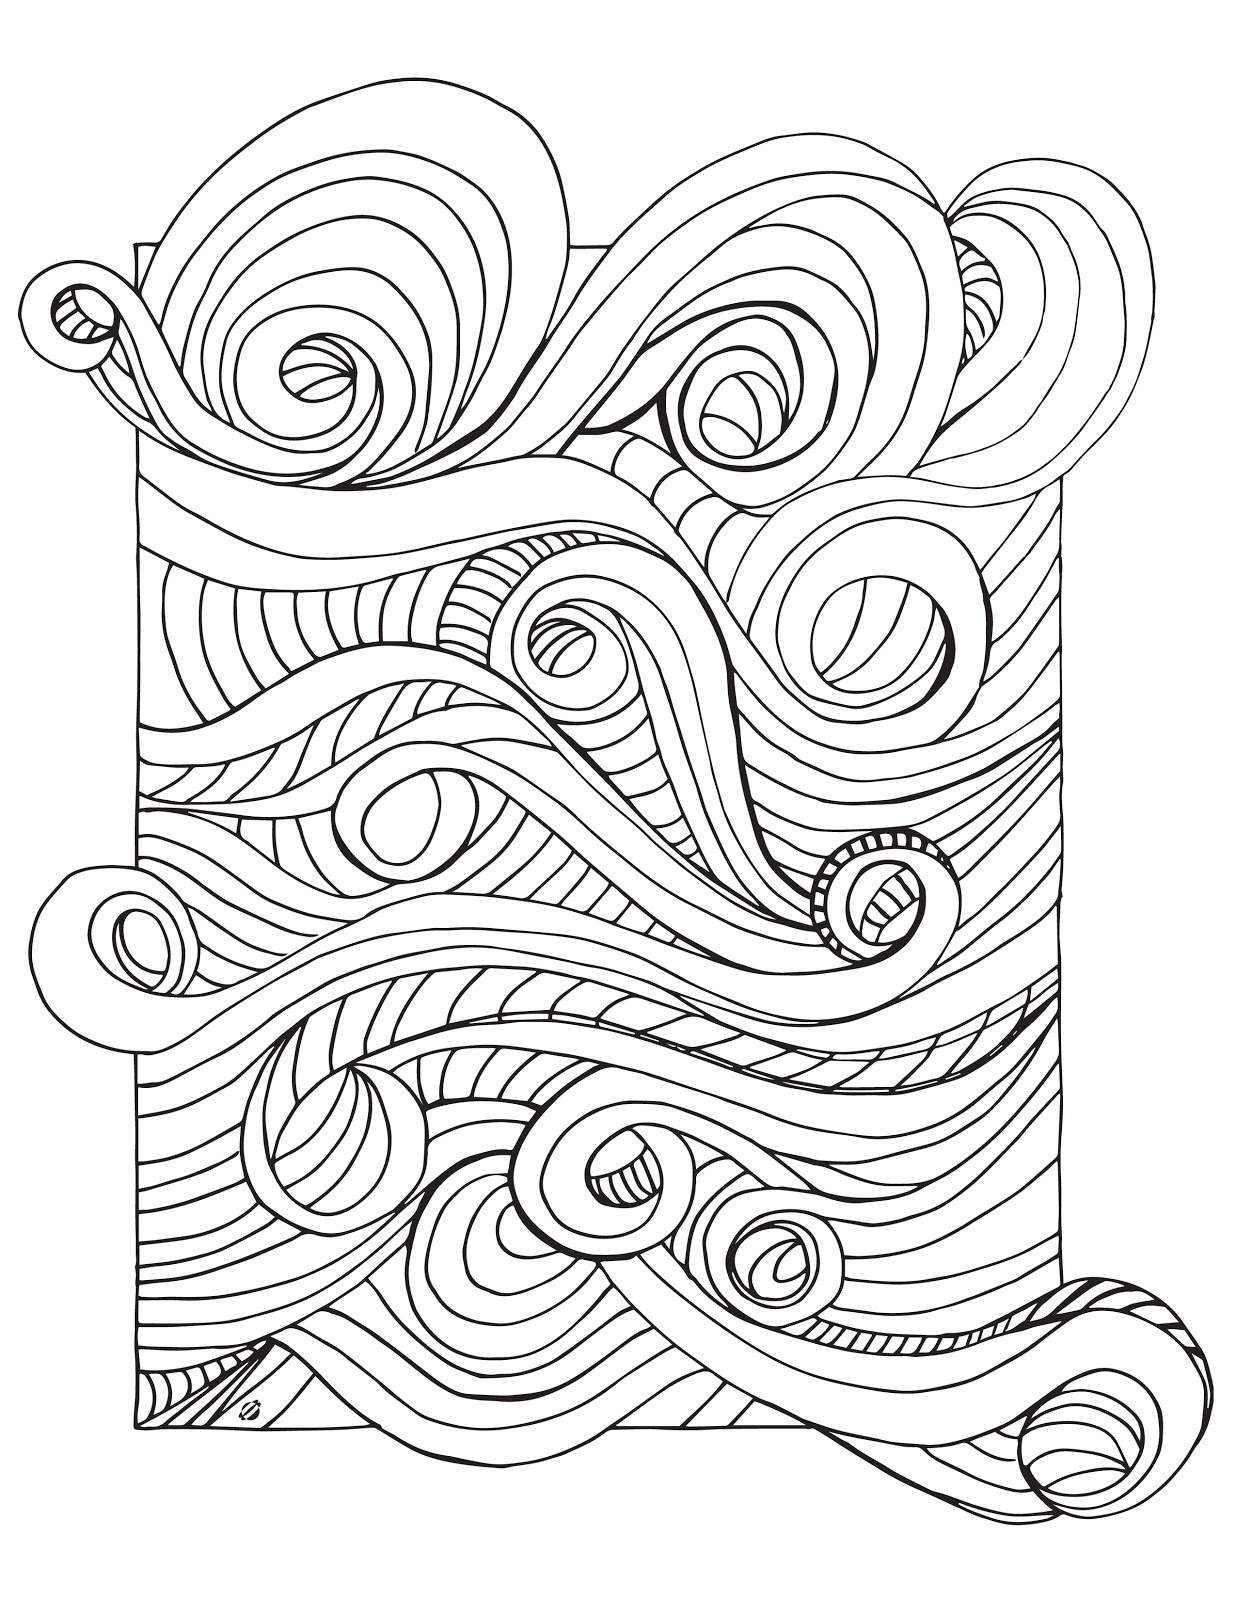 LostBumblebee: Grown Up Colouring : Rushing Wind.